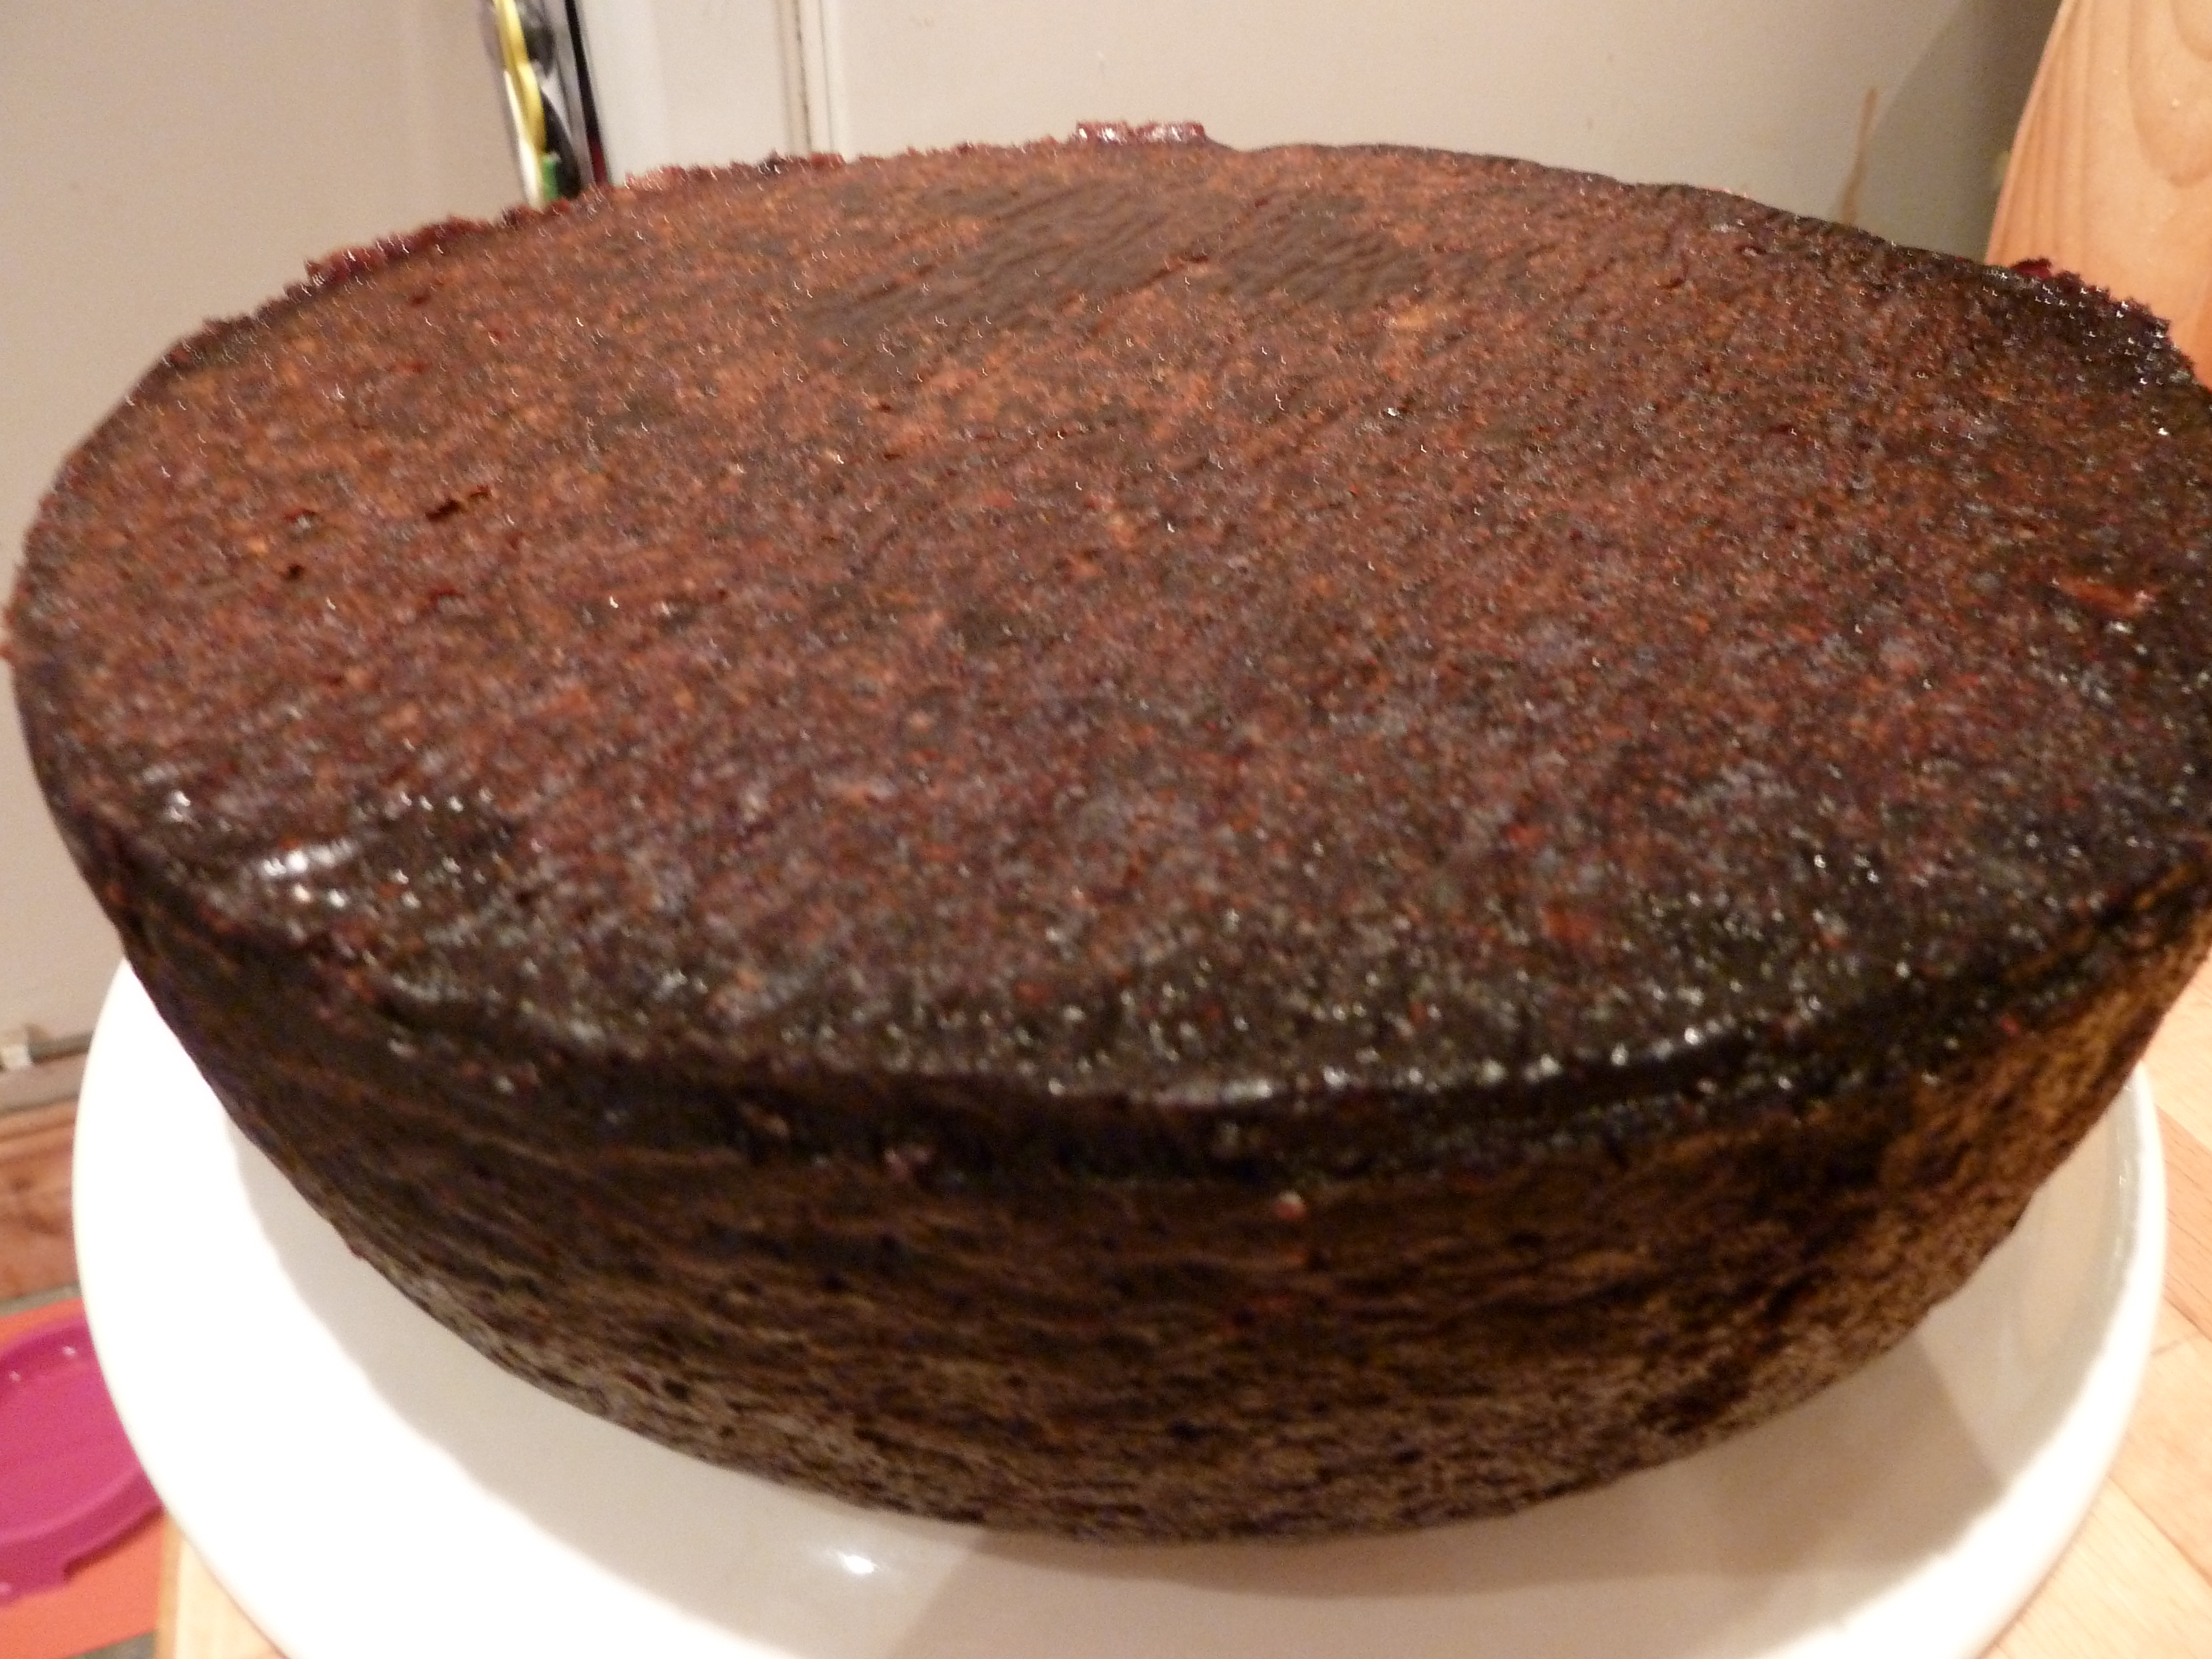 28 Jamaican Black Rum Cake The Most Alcoholic Cake I